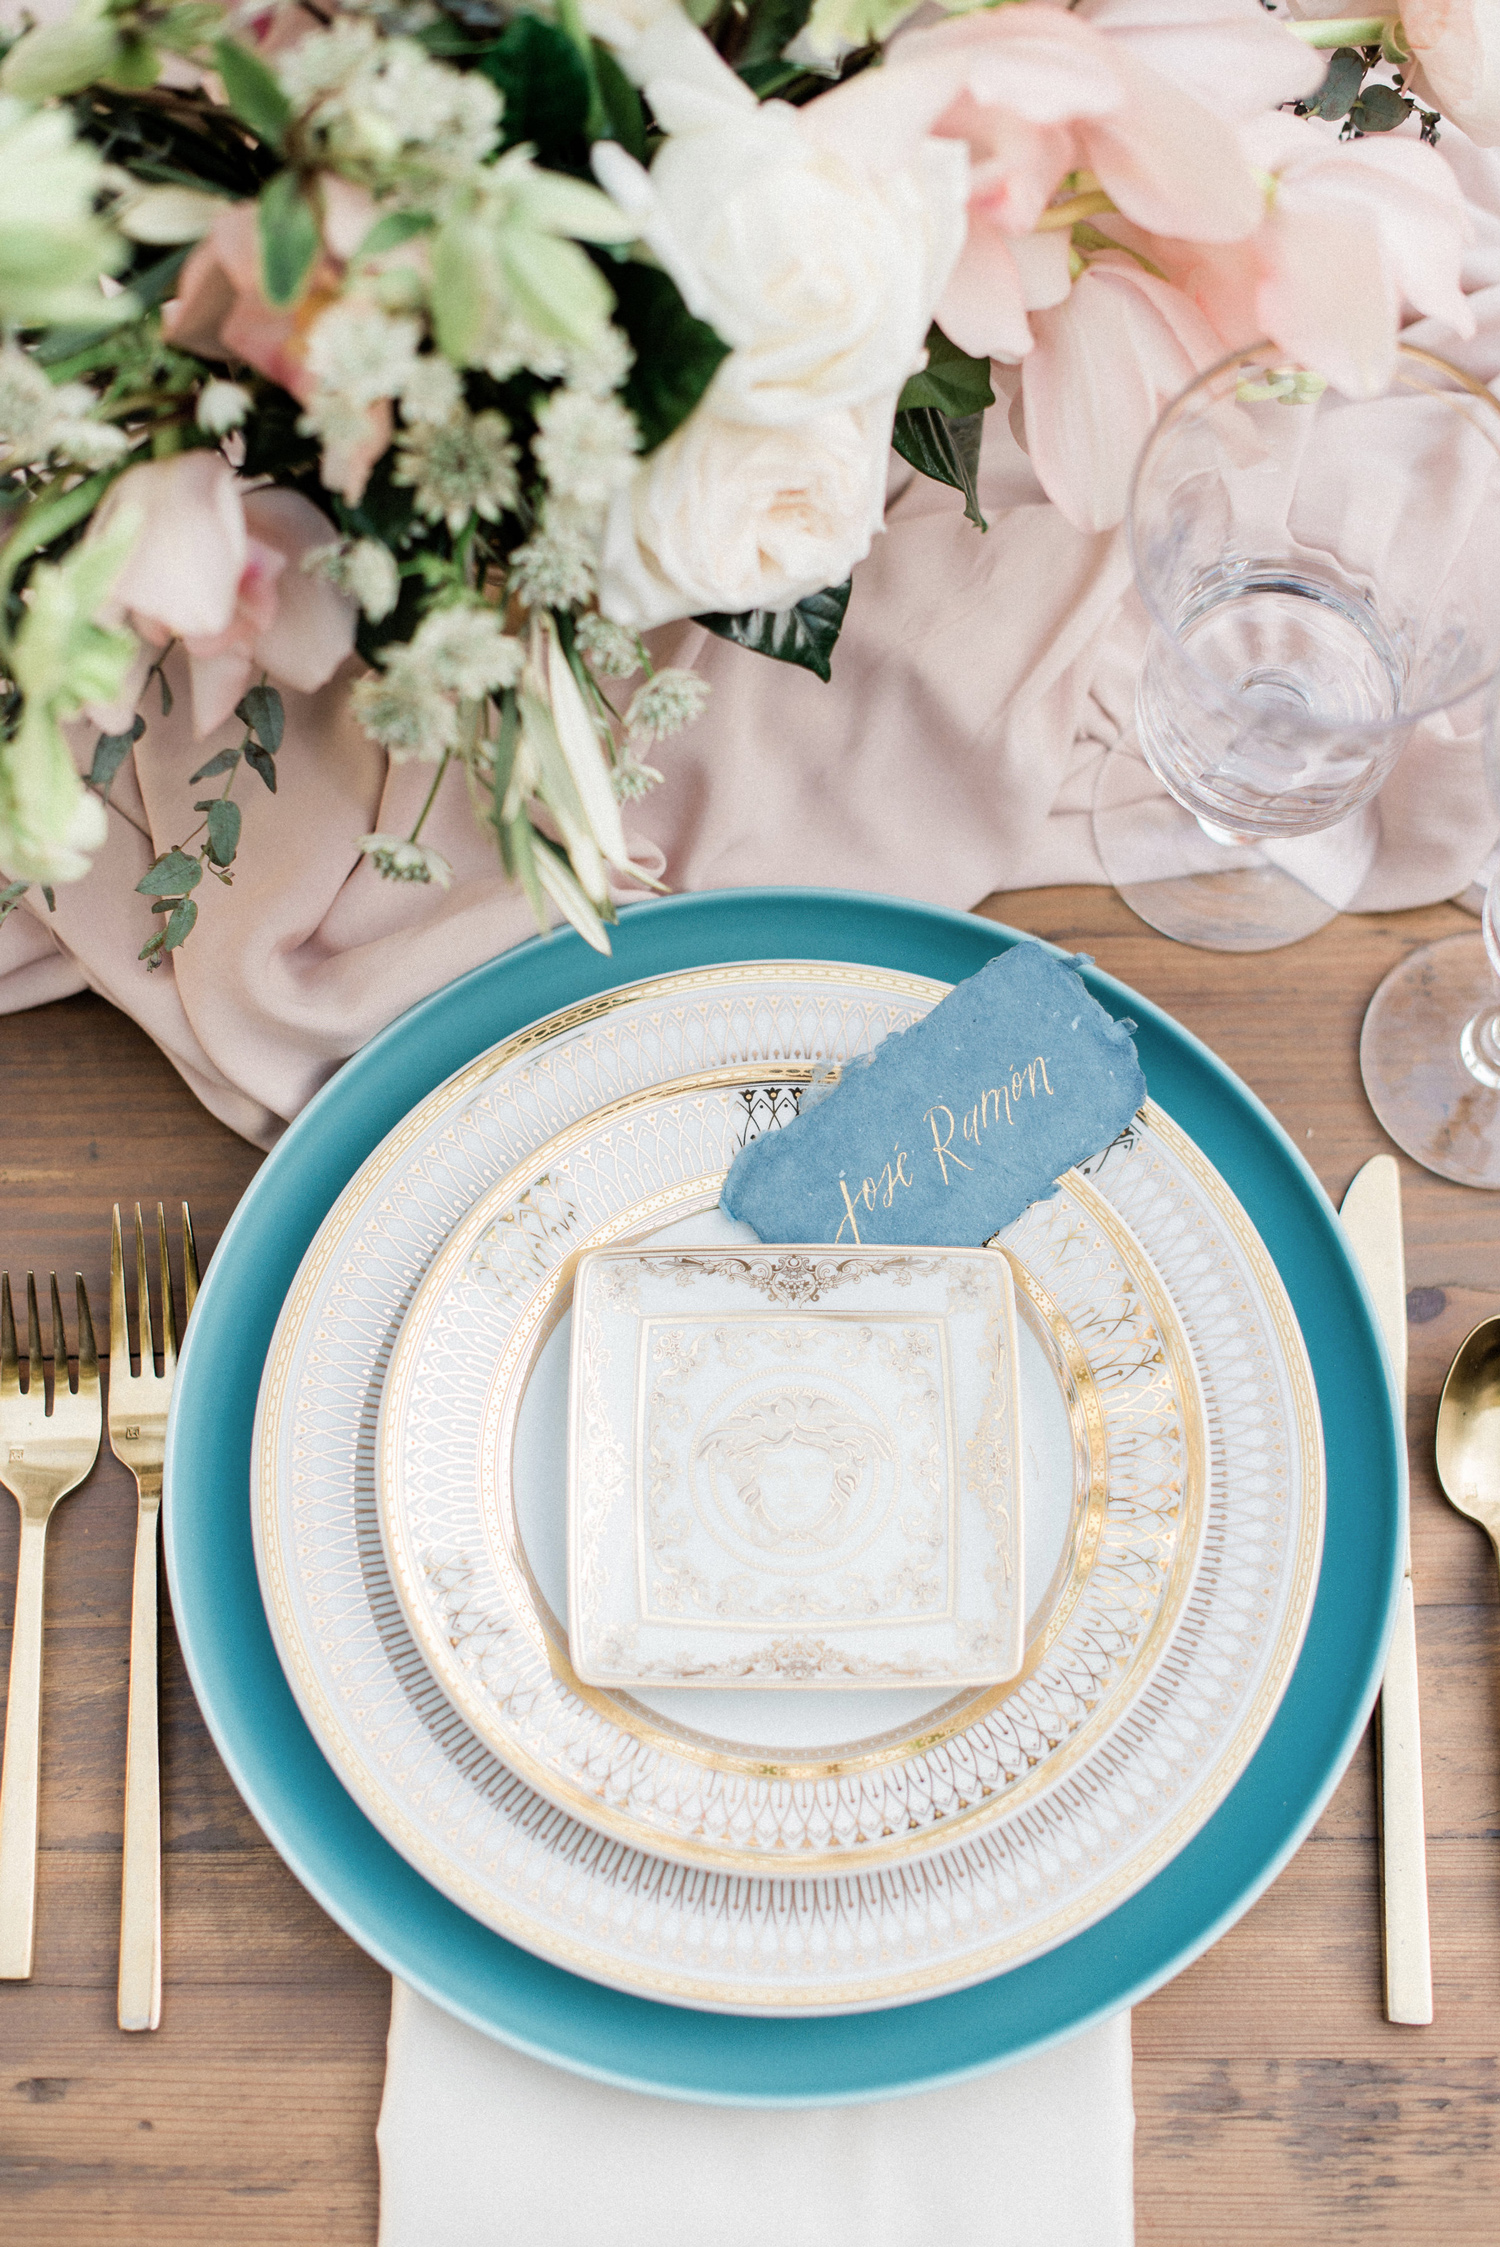 white plates with gold and teal accent designs with gold silverware